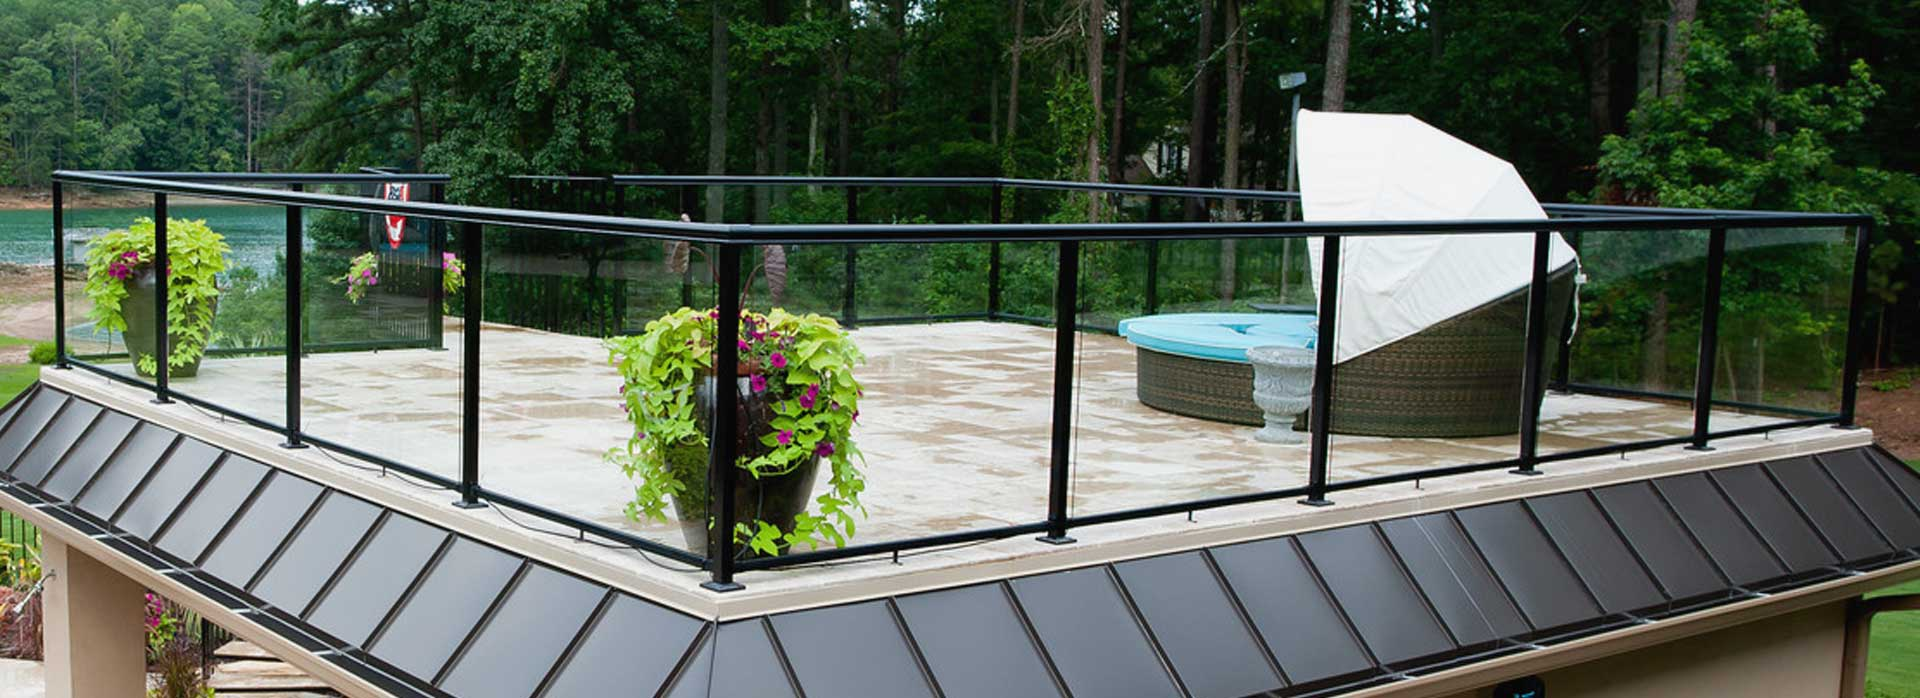 outdoor glass railing systems